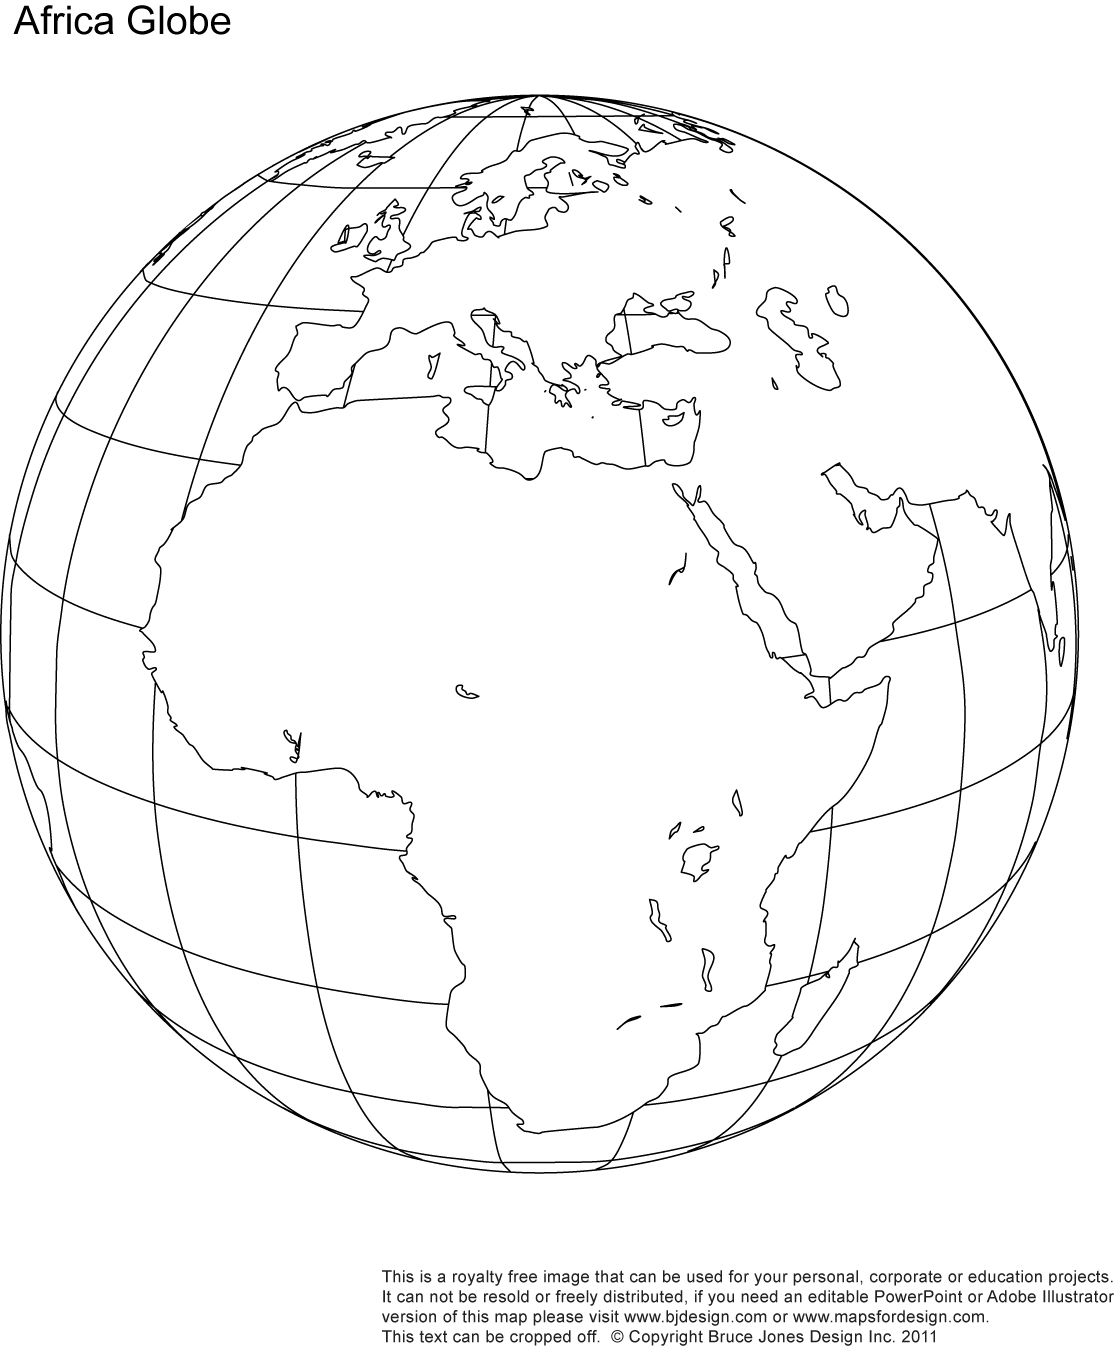 It's just an image of Impertinent Printable World Globe